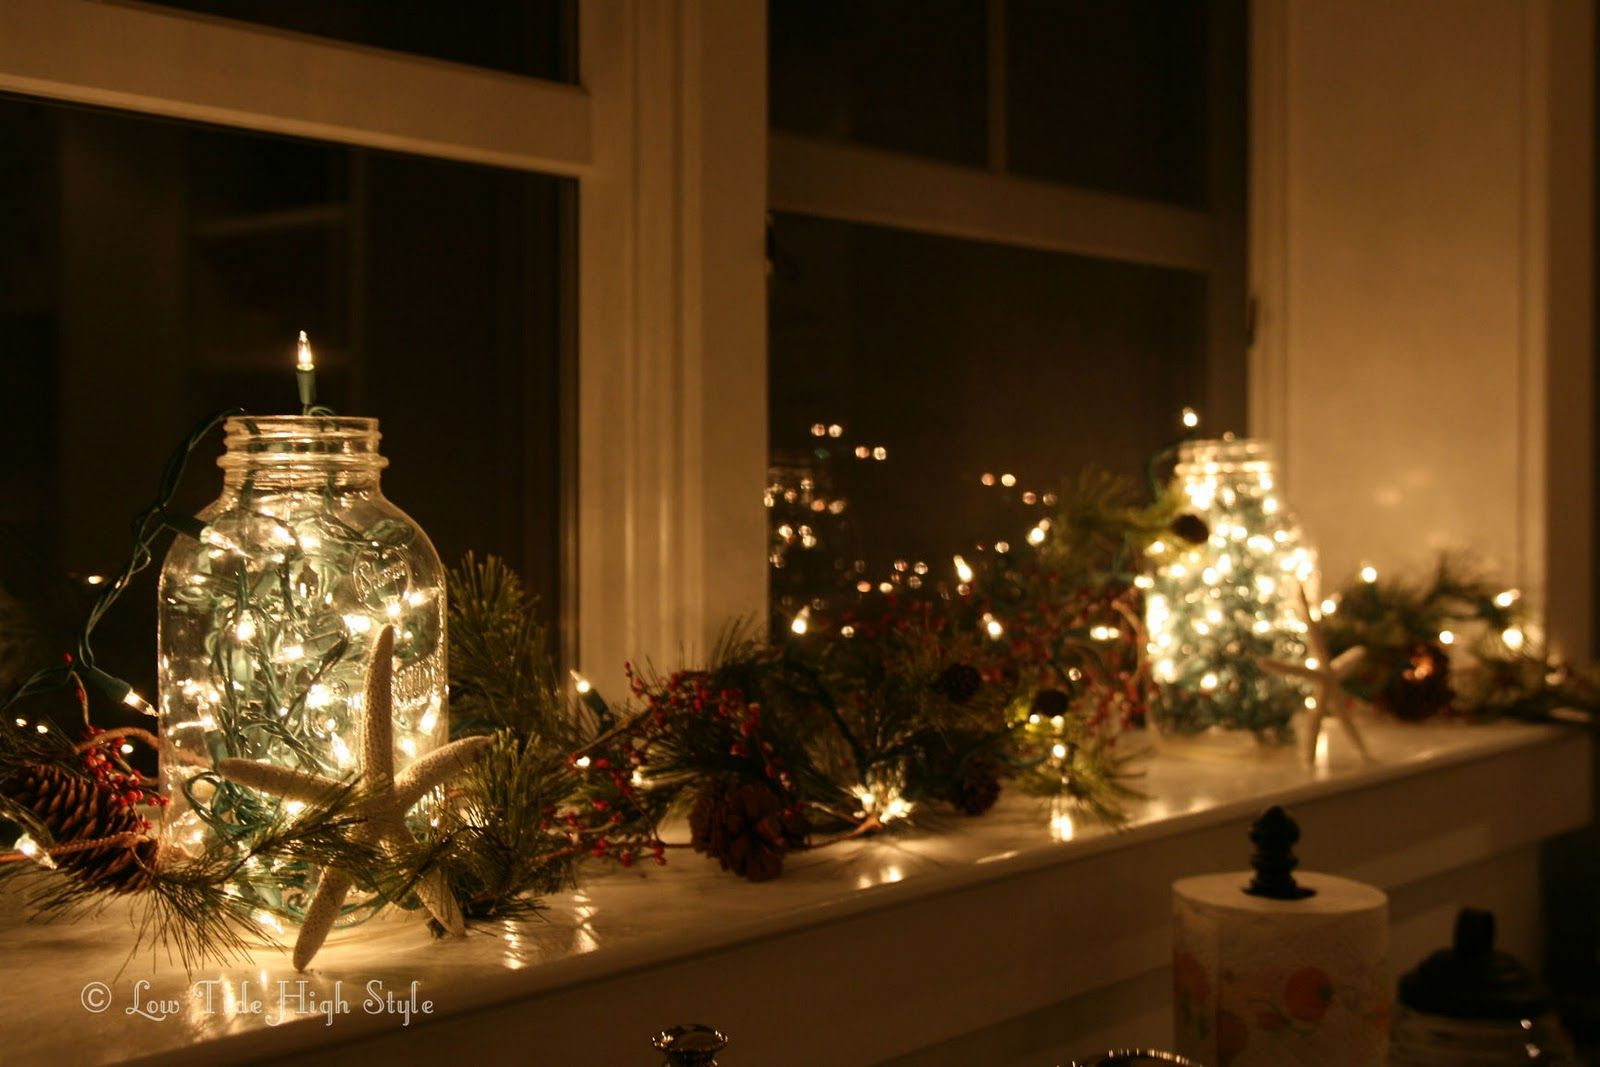 holiday windowsill decor idea - Christmas Window Sill Decorations Ideas